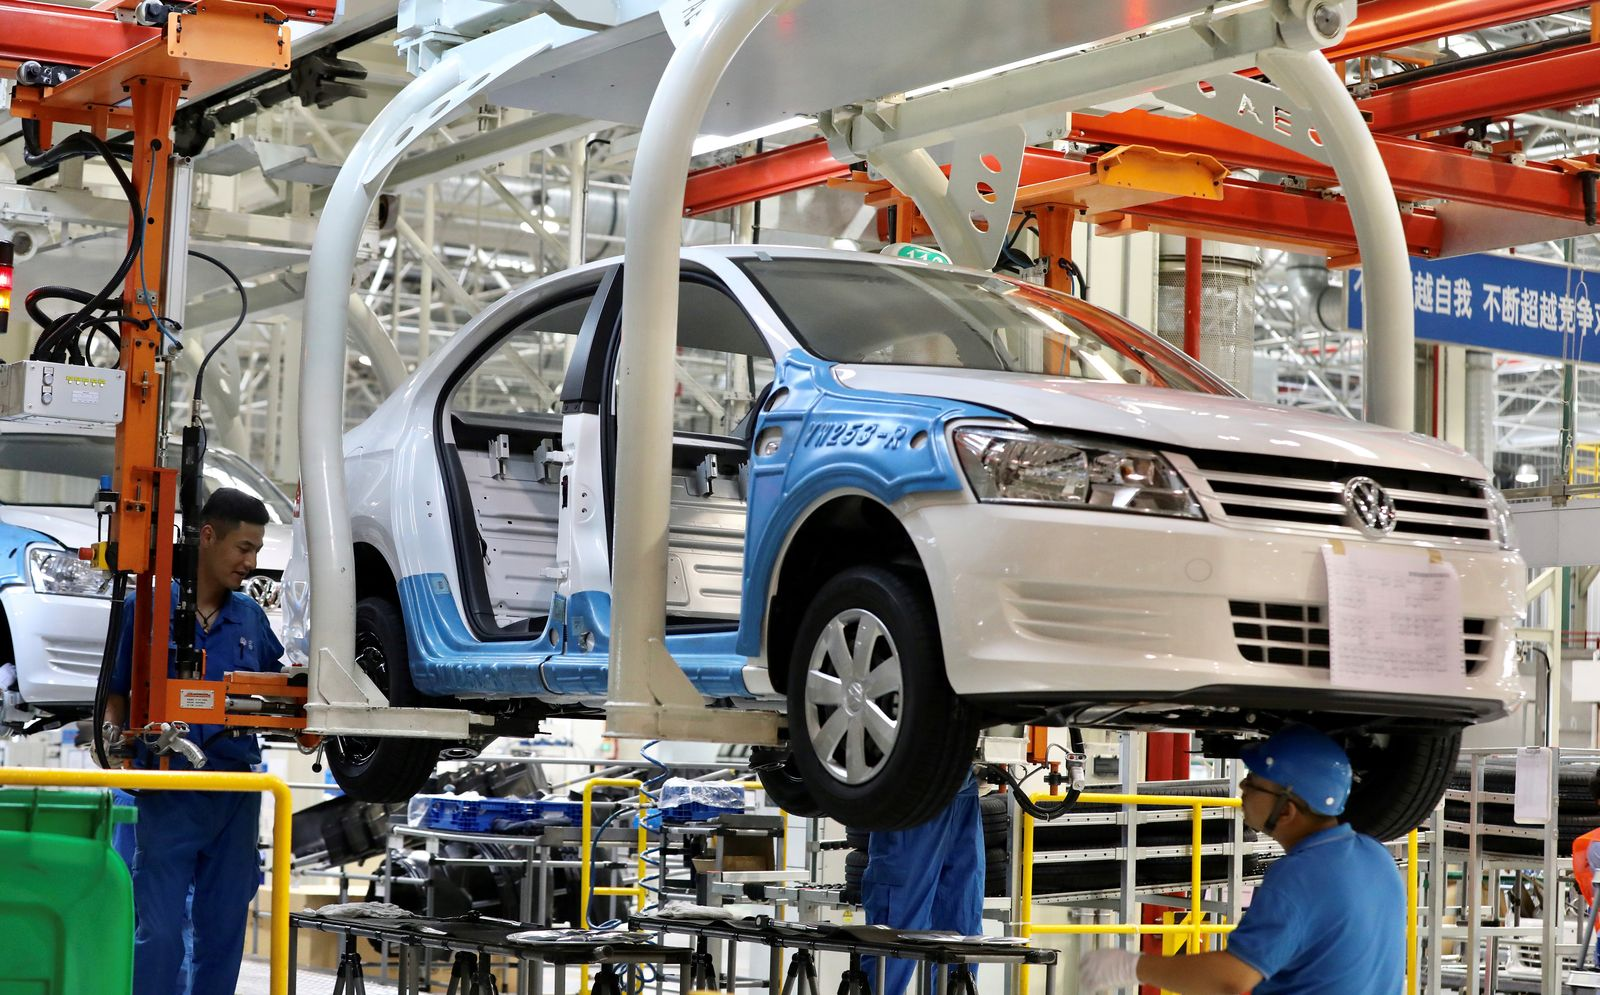 Employees work on assembling vehicles at a plant of SAIC Volkswagen in Urumqi, Xinjiang